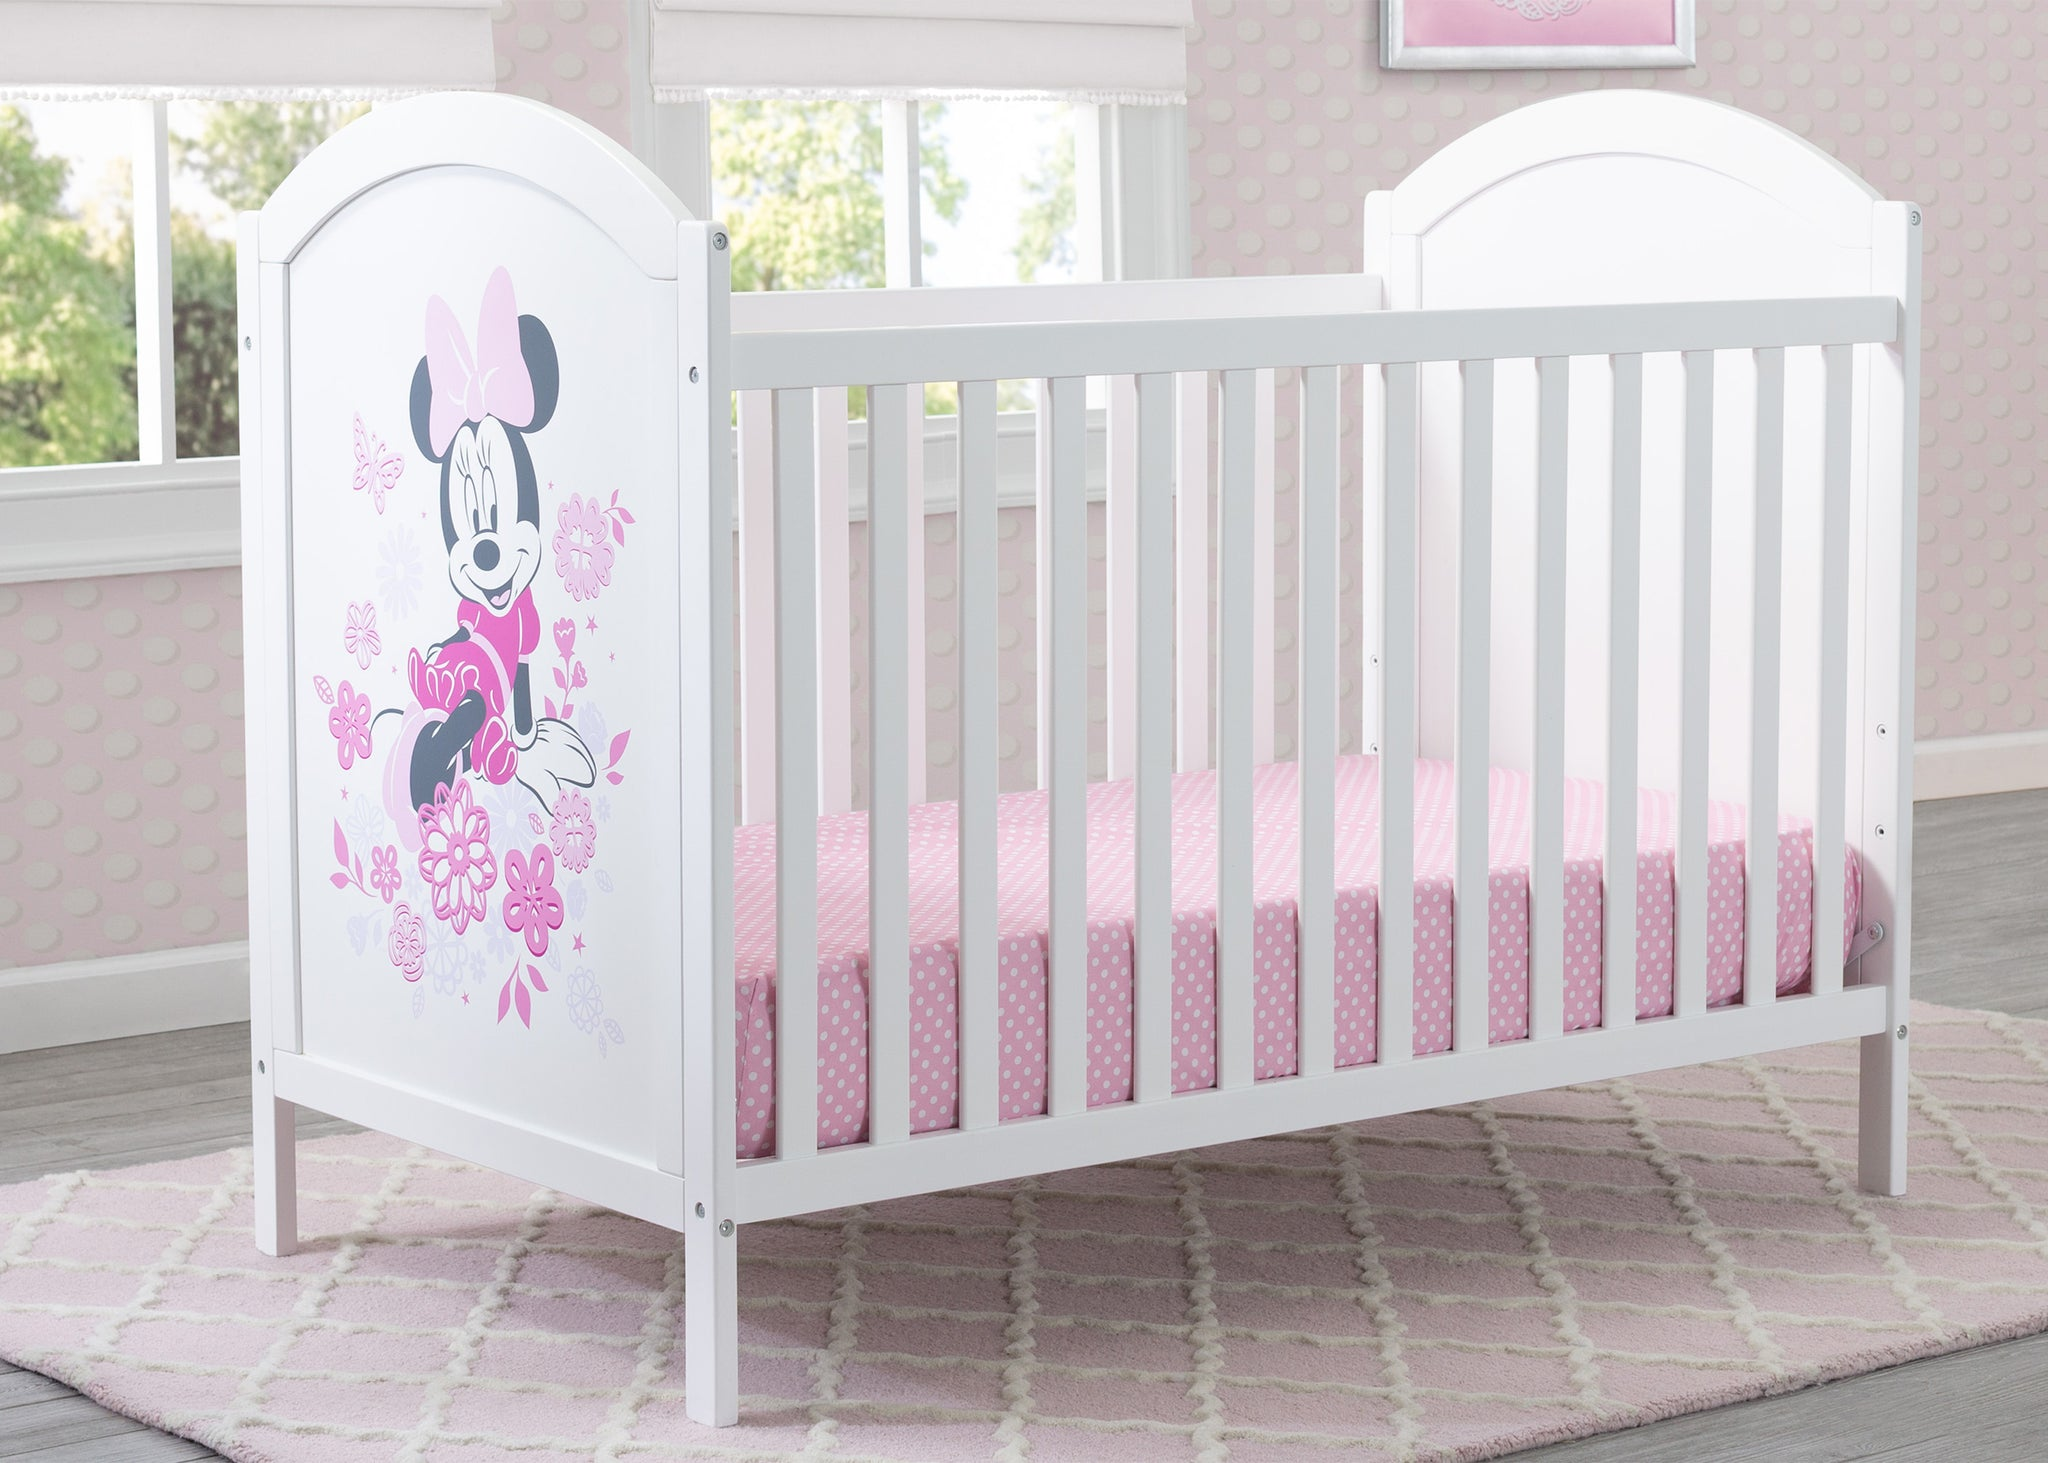 Disney Bianca White with Minnie (1302) Minnie Mouse 4-in-1 Convertible Crib by Delta Children, Hangtag View